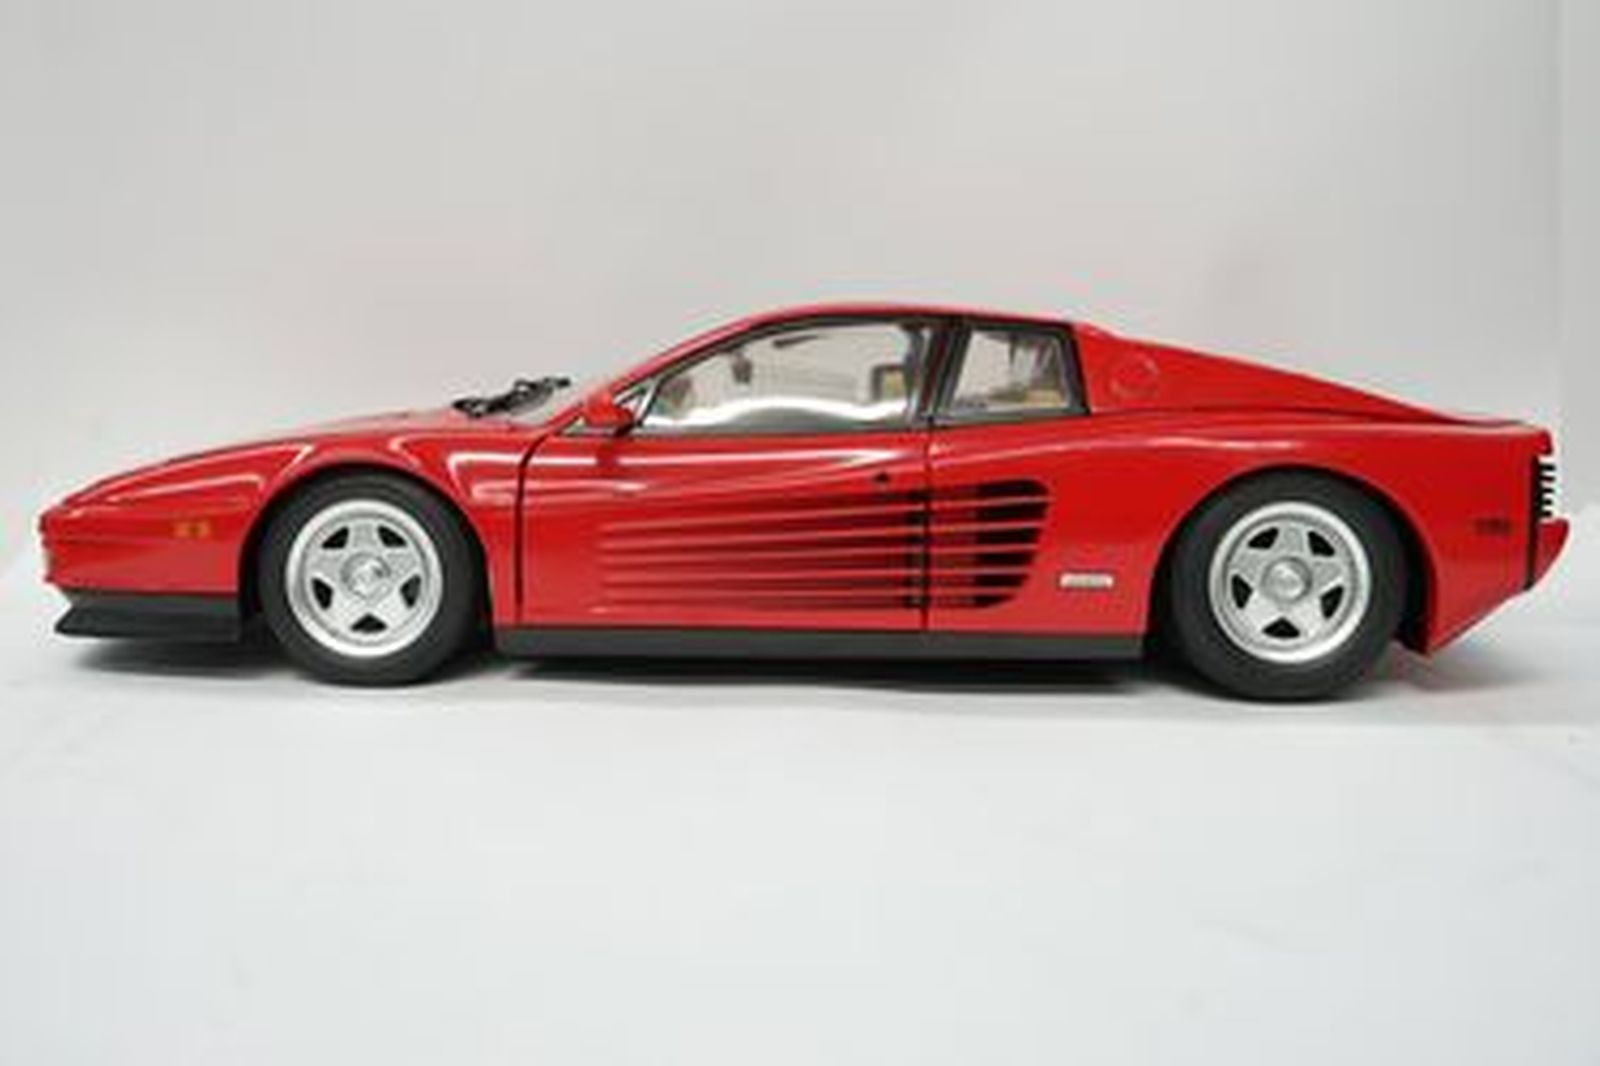 collect collection ian sale featuring die classic cummins for testarossa melbourne scale pocher auctions sold the summer model cast car from shannons auction ferrari